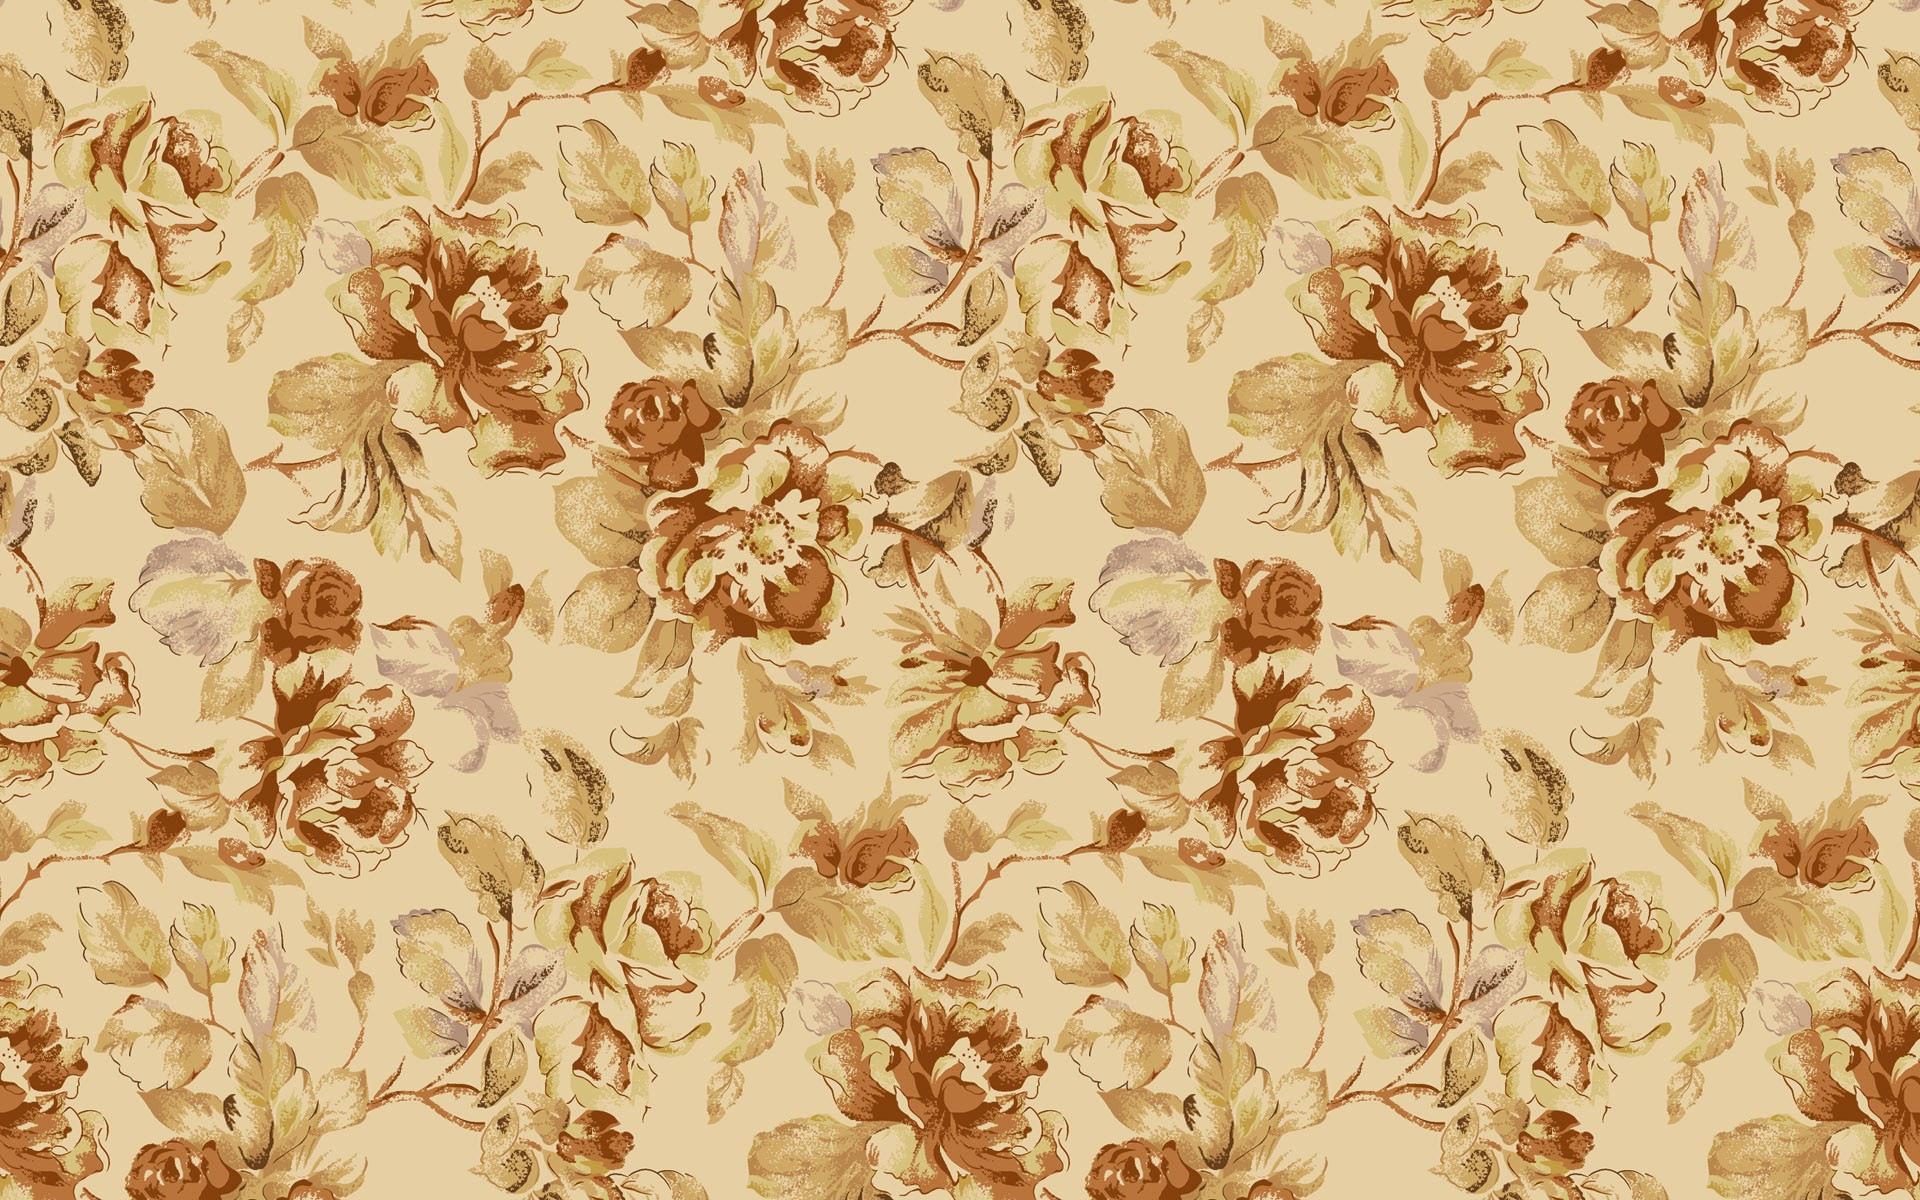 Classic Vintage Wallpaper: Vintage Wallpaper Pattern - HD Desktop Wallpapers